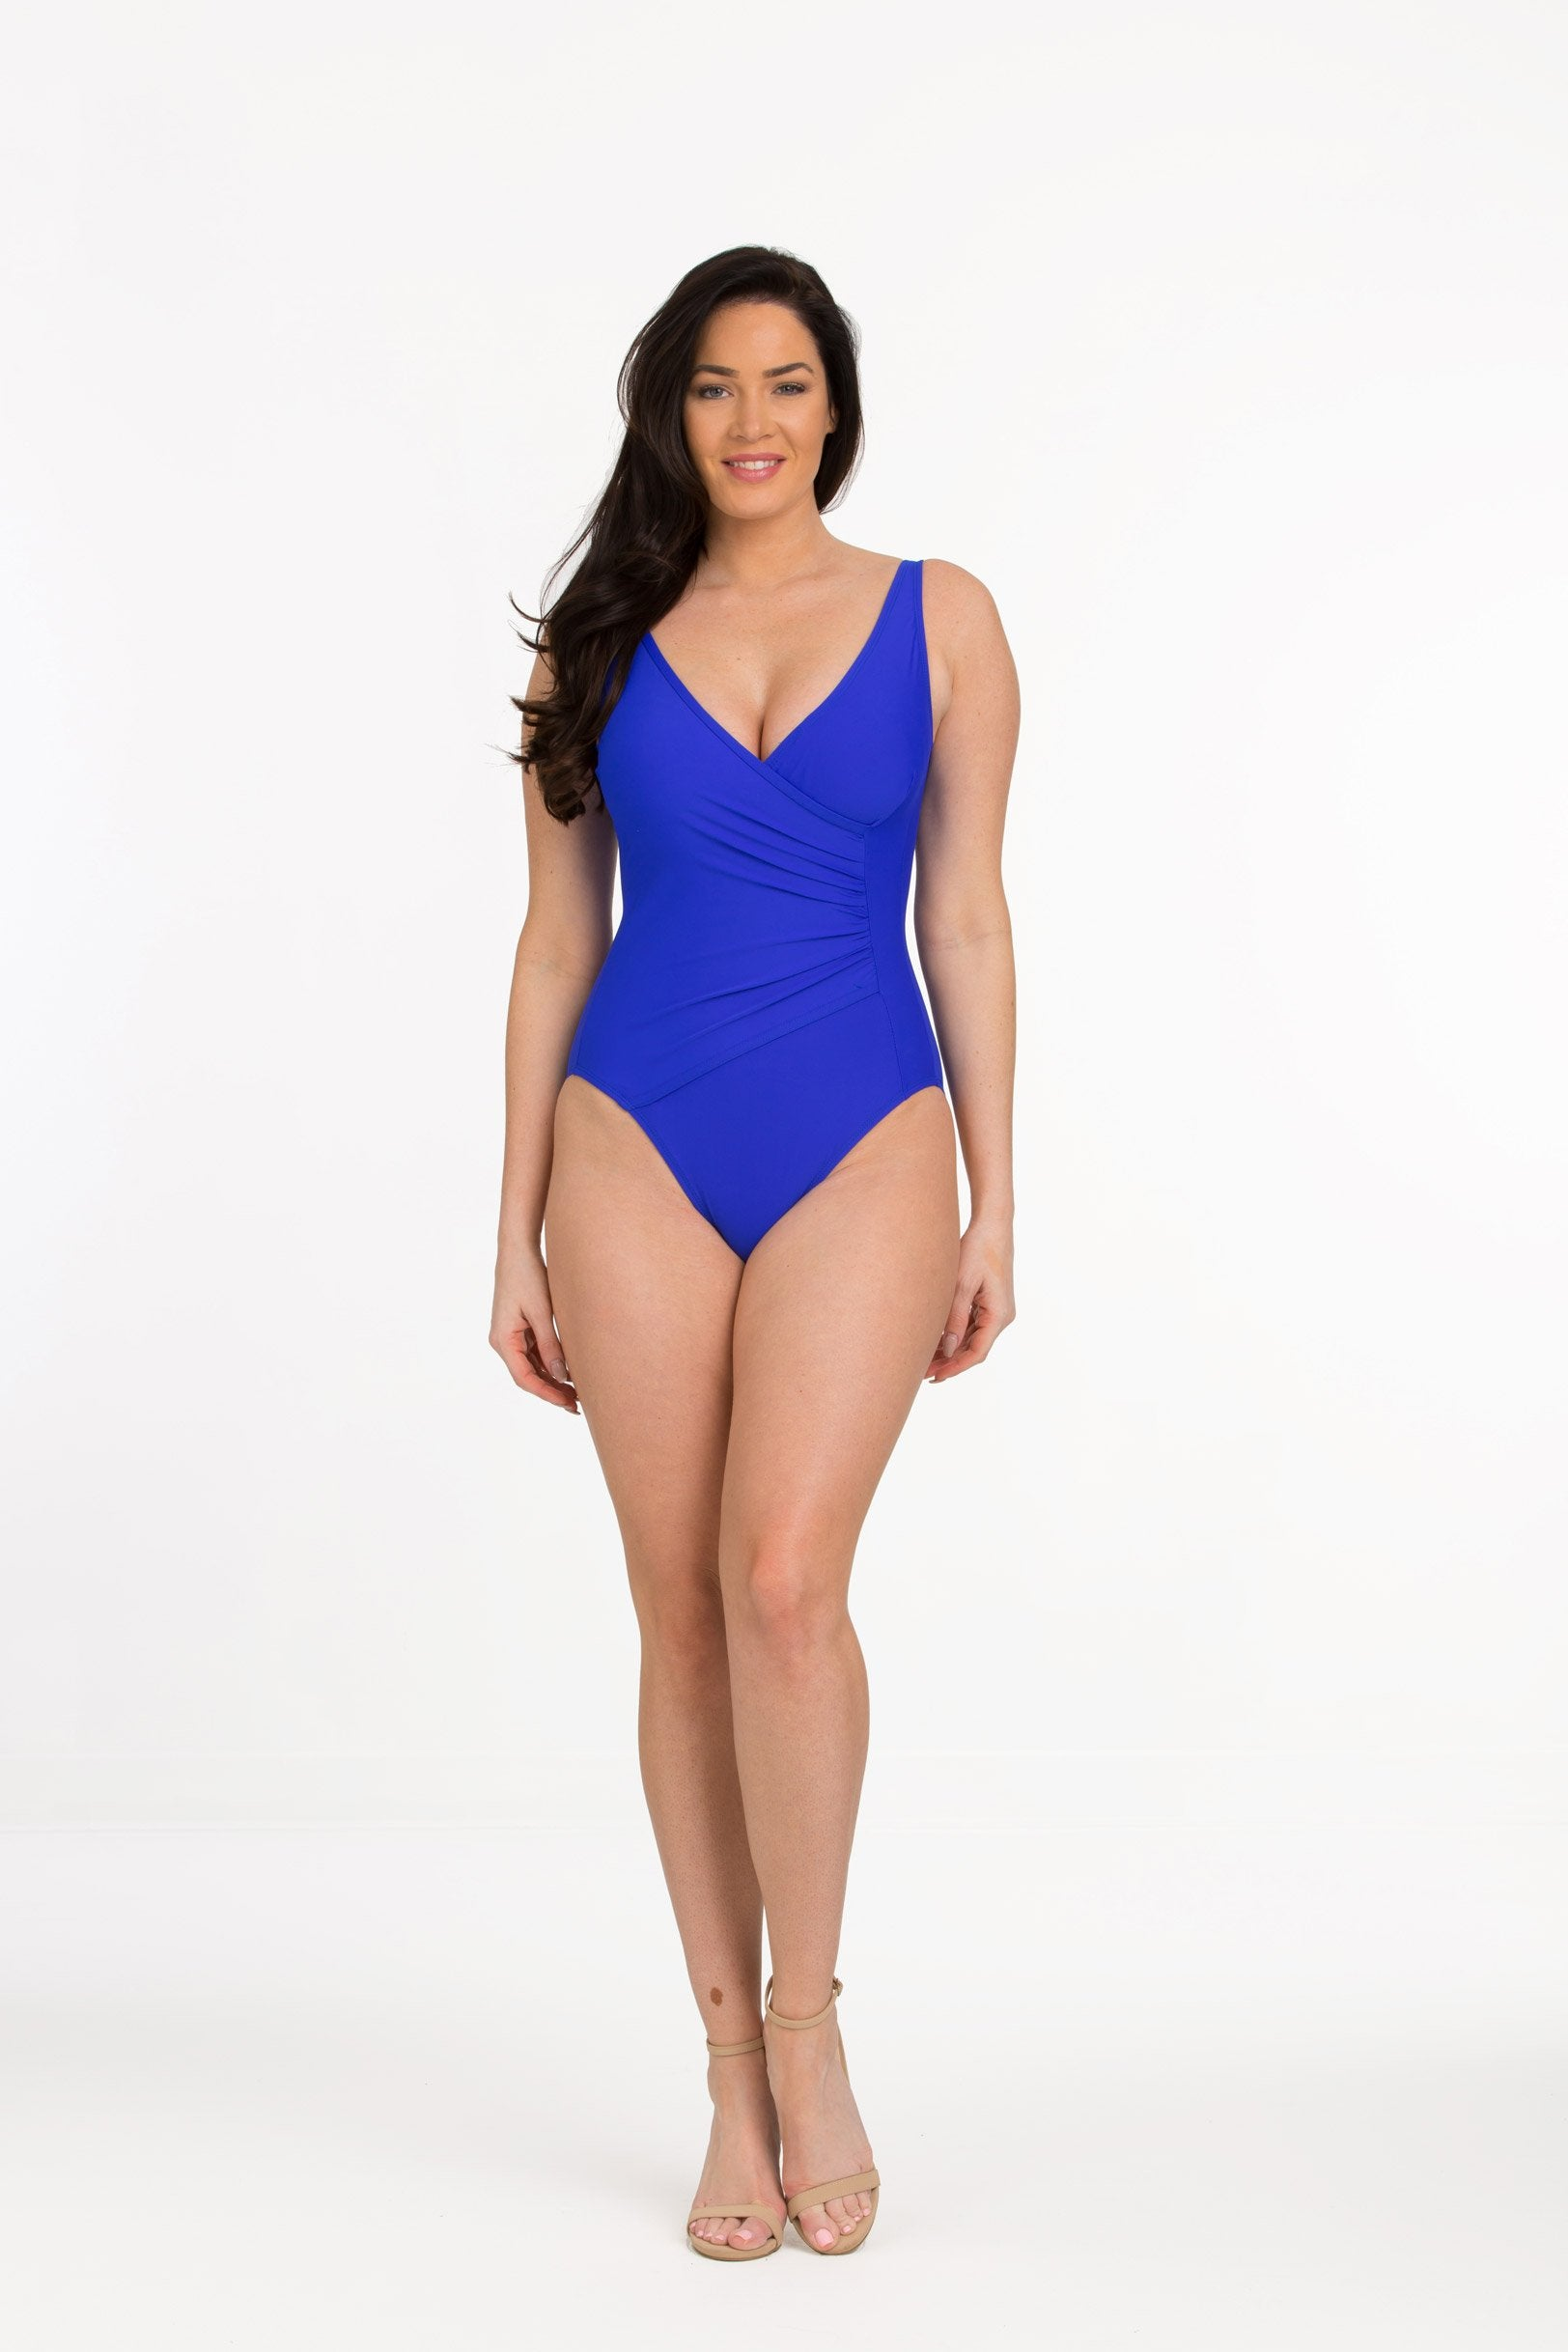 fast color quality clear-cut texture Surplice Maillot with Shelf Bra (Style 313)